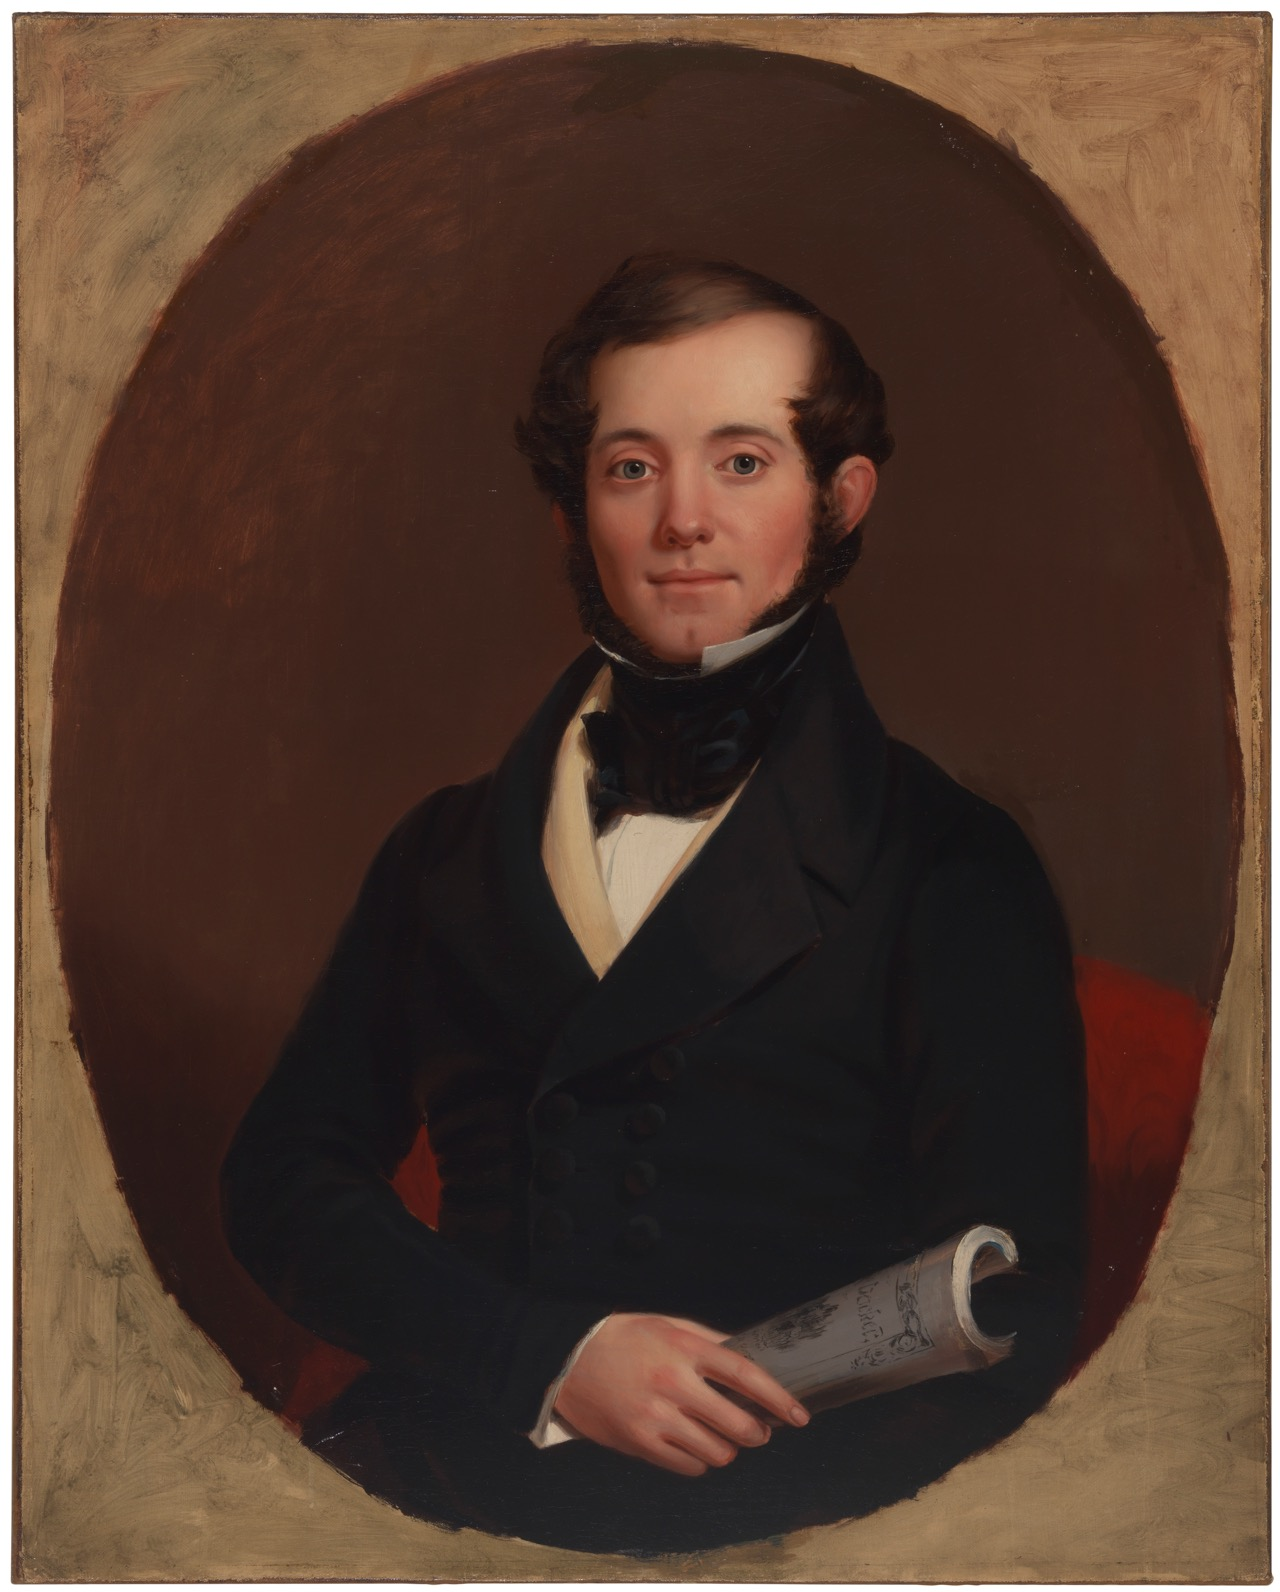 John E. Brooks, son of Henry Sands Brooks, the founder of Brooks Brothers (c. 1845)